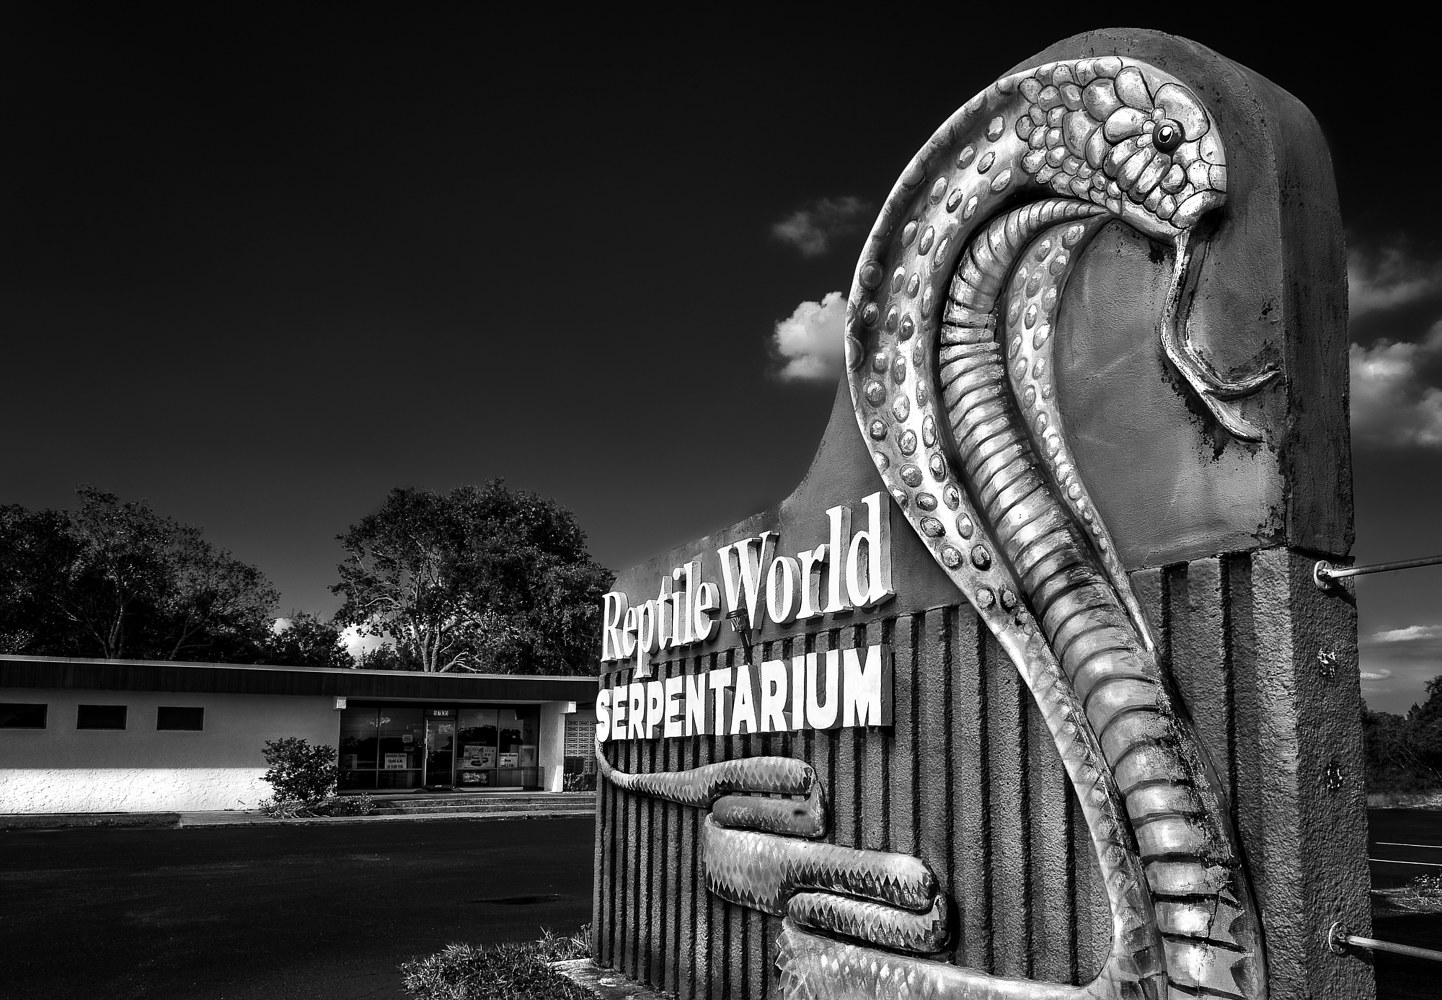 Reptile World Serpentarium - US 192  (PL52_7294BW) by Gary Jones